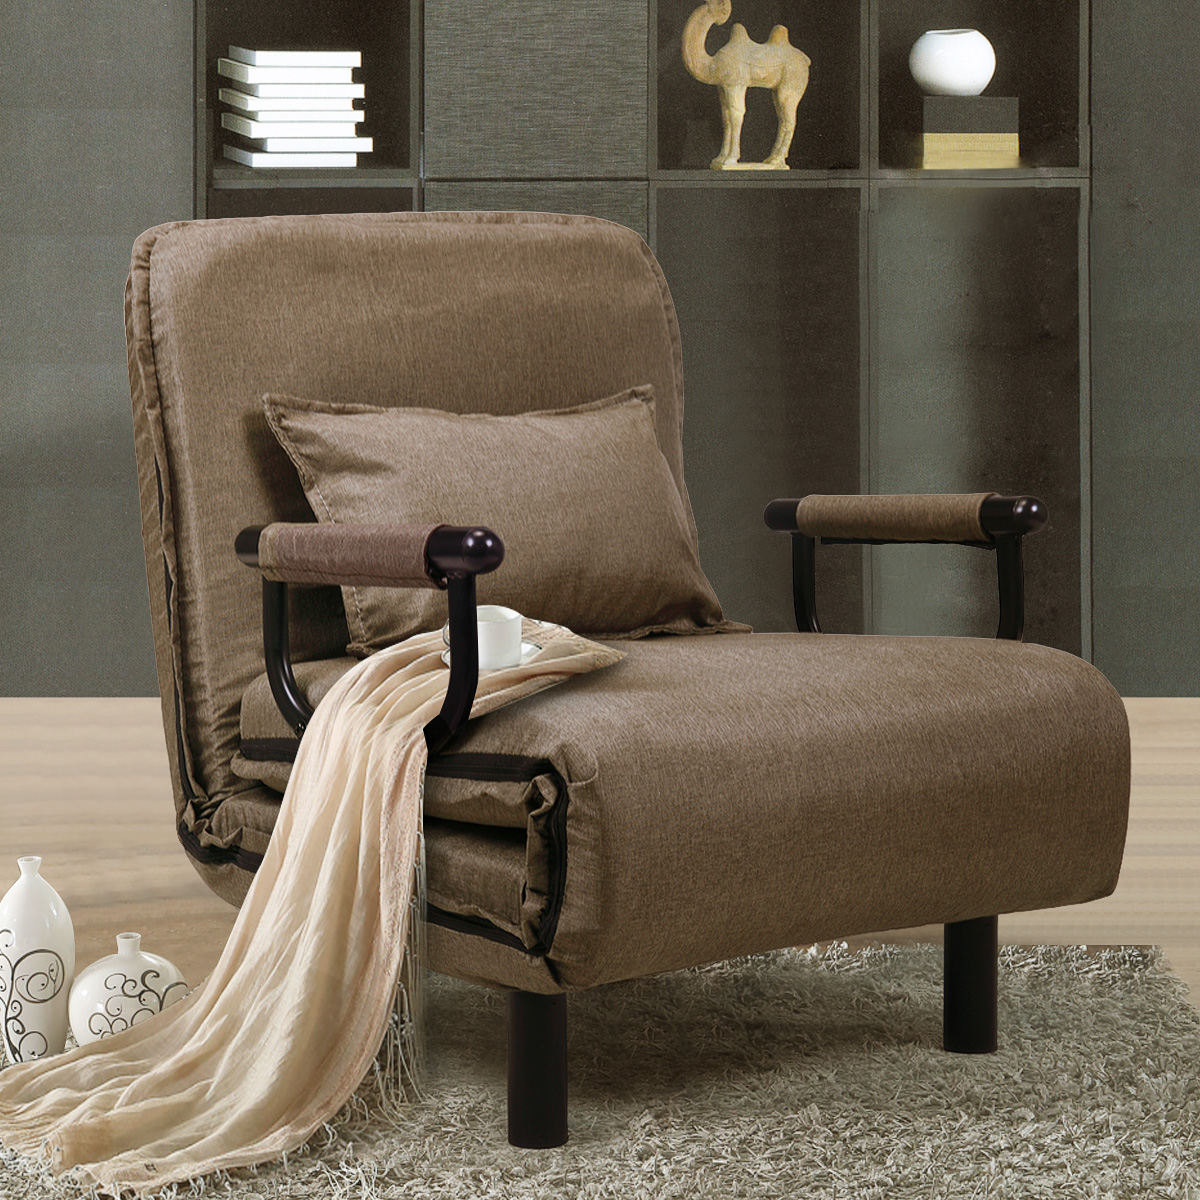 jaxpety fabric folding chaise lounge sofa chair couch with armrest and pillow brown